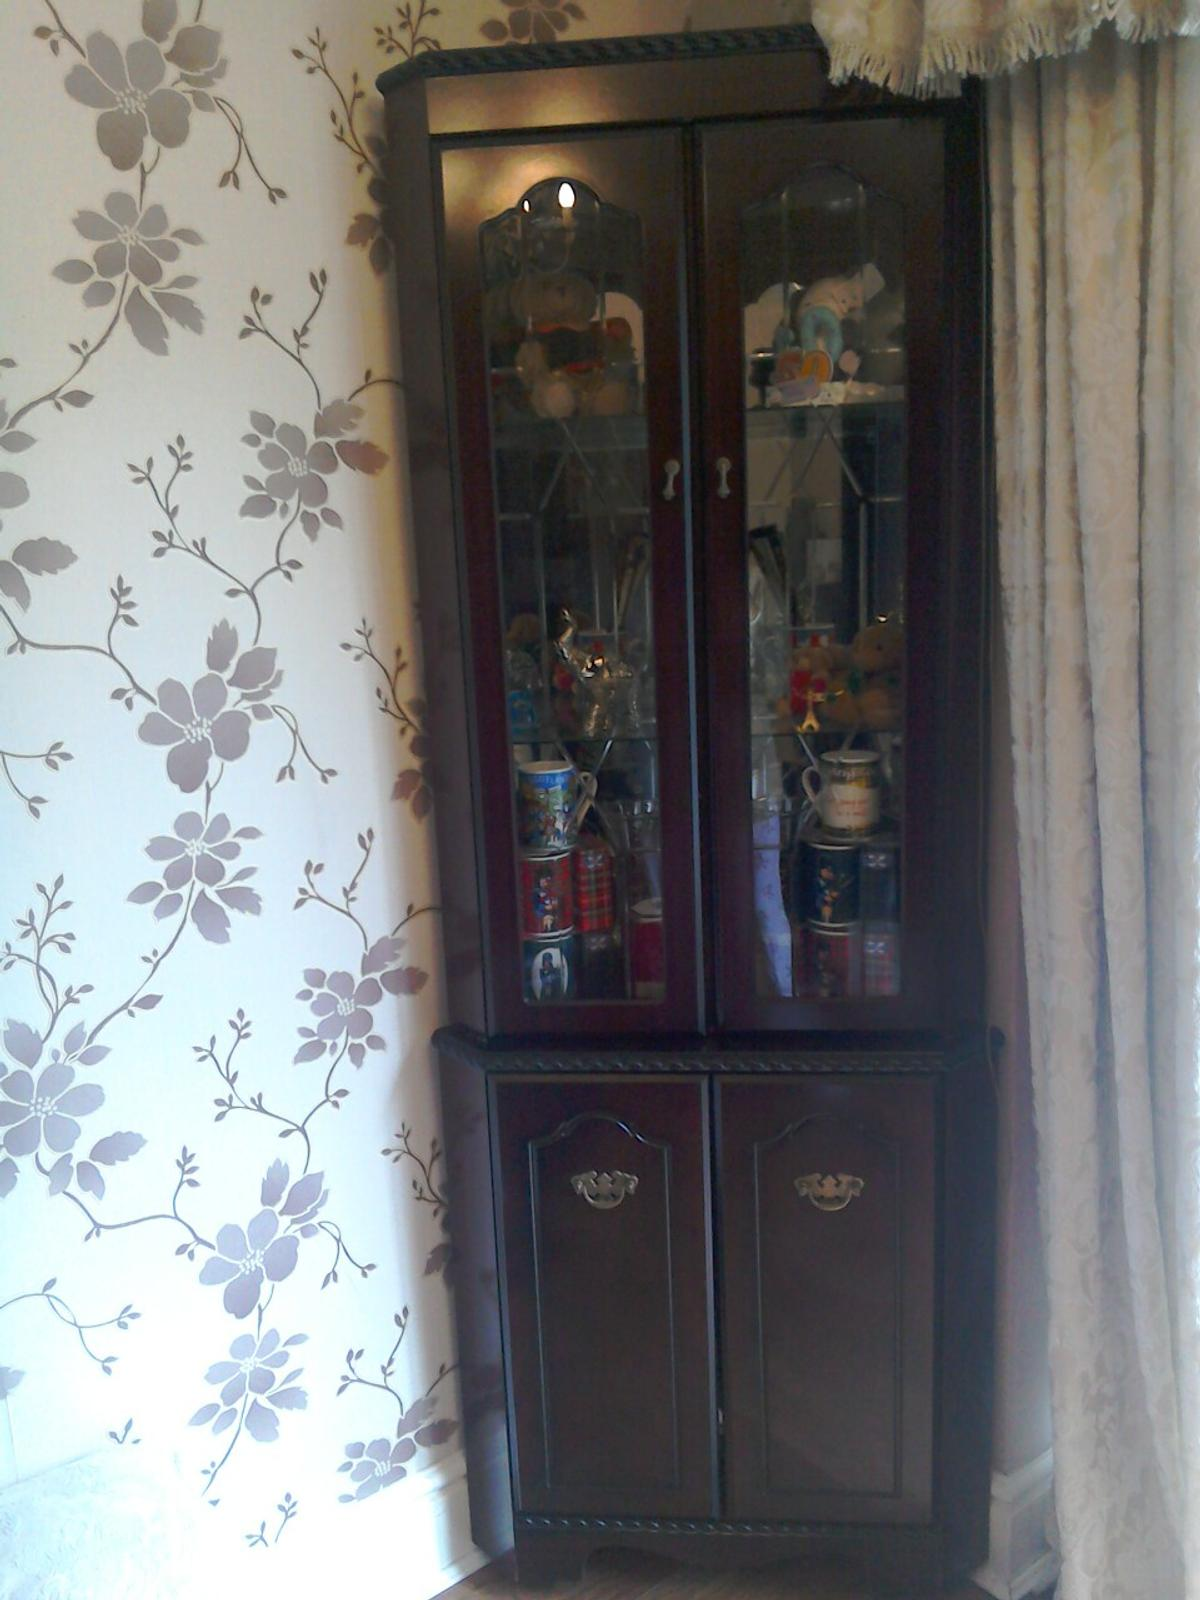 Mahogany Display Cabinets With Lights Inside In M21 ...